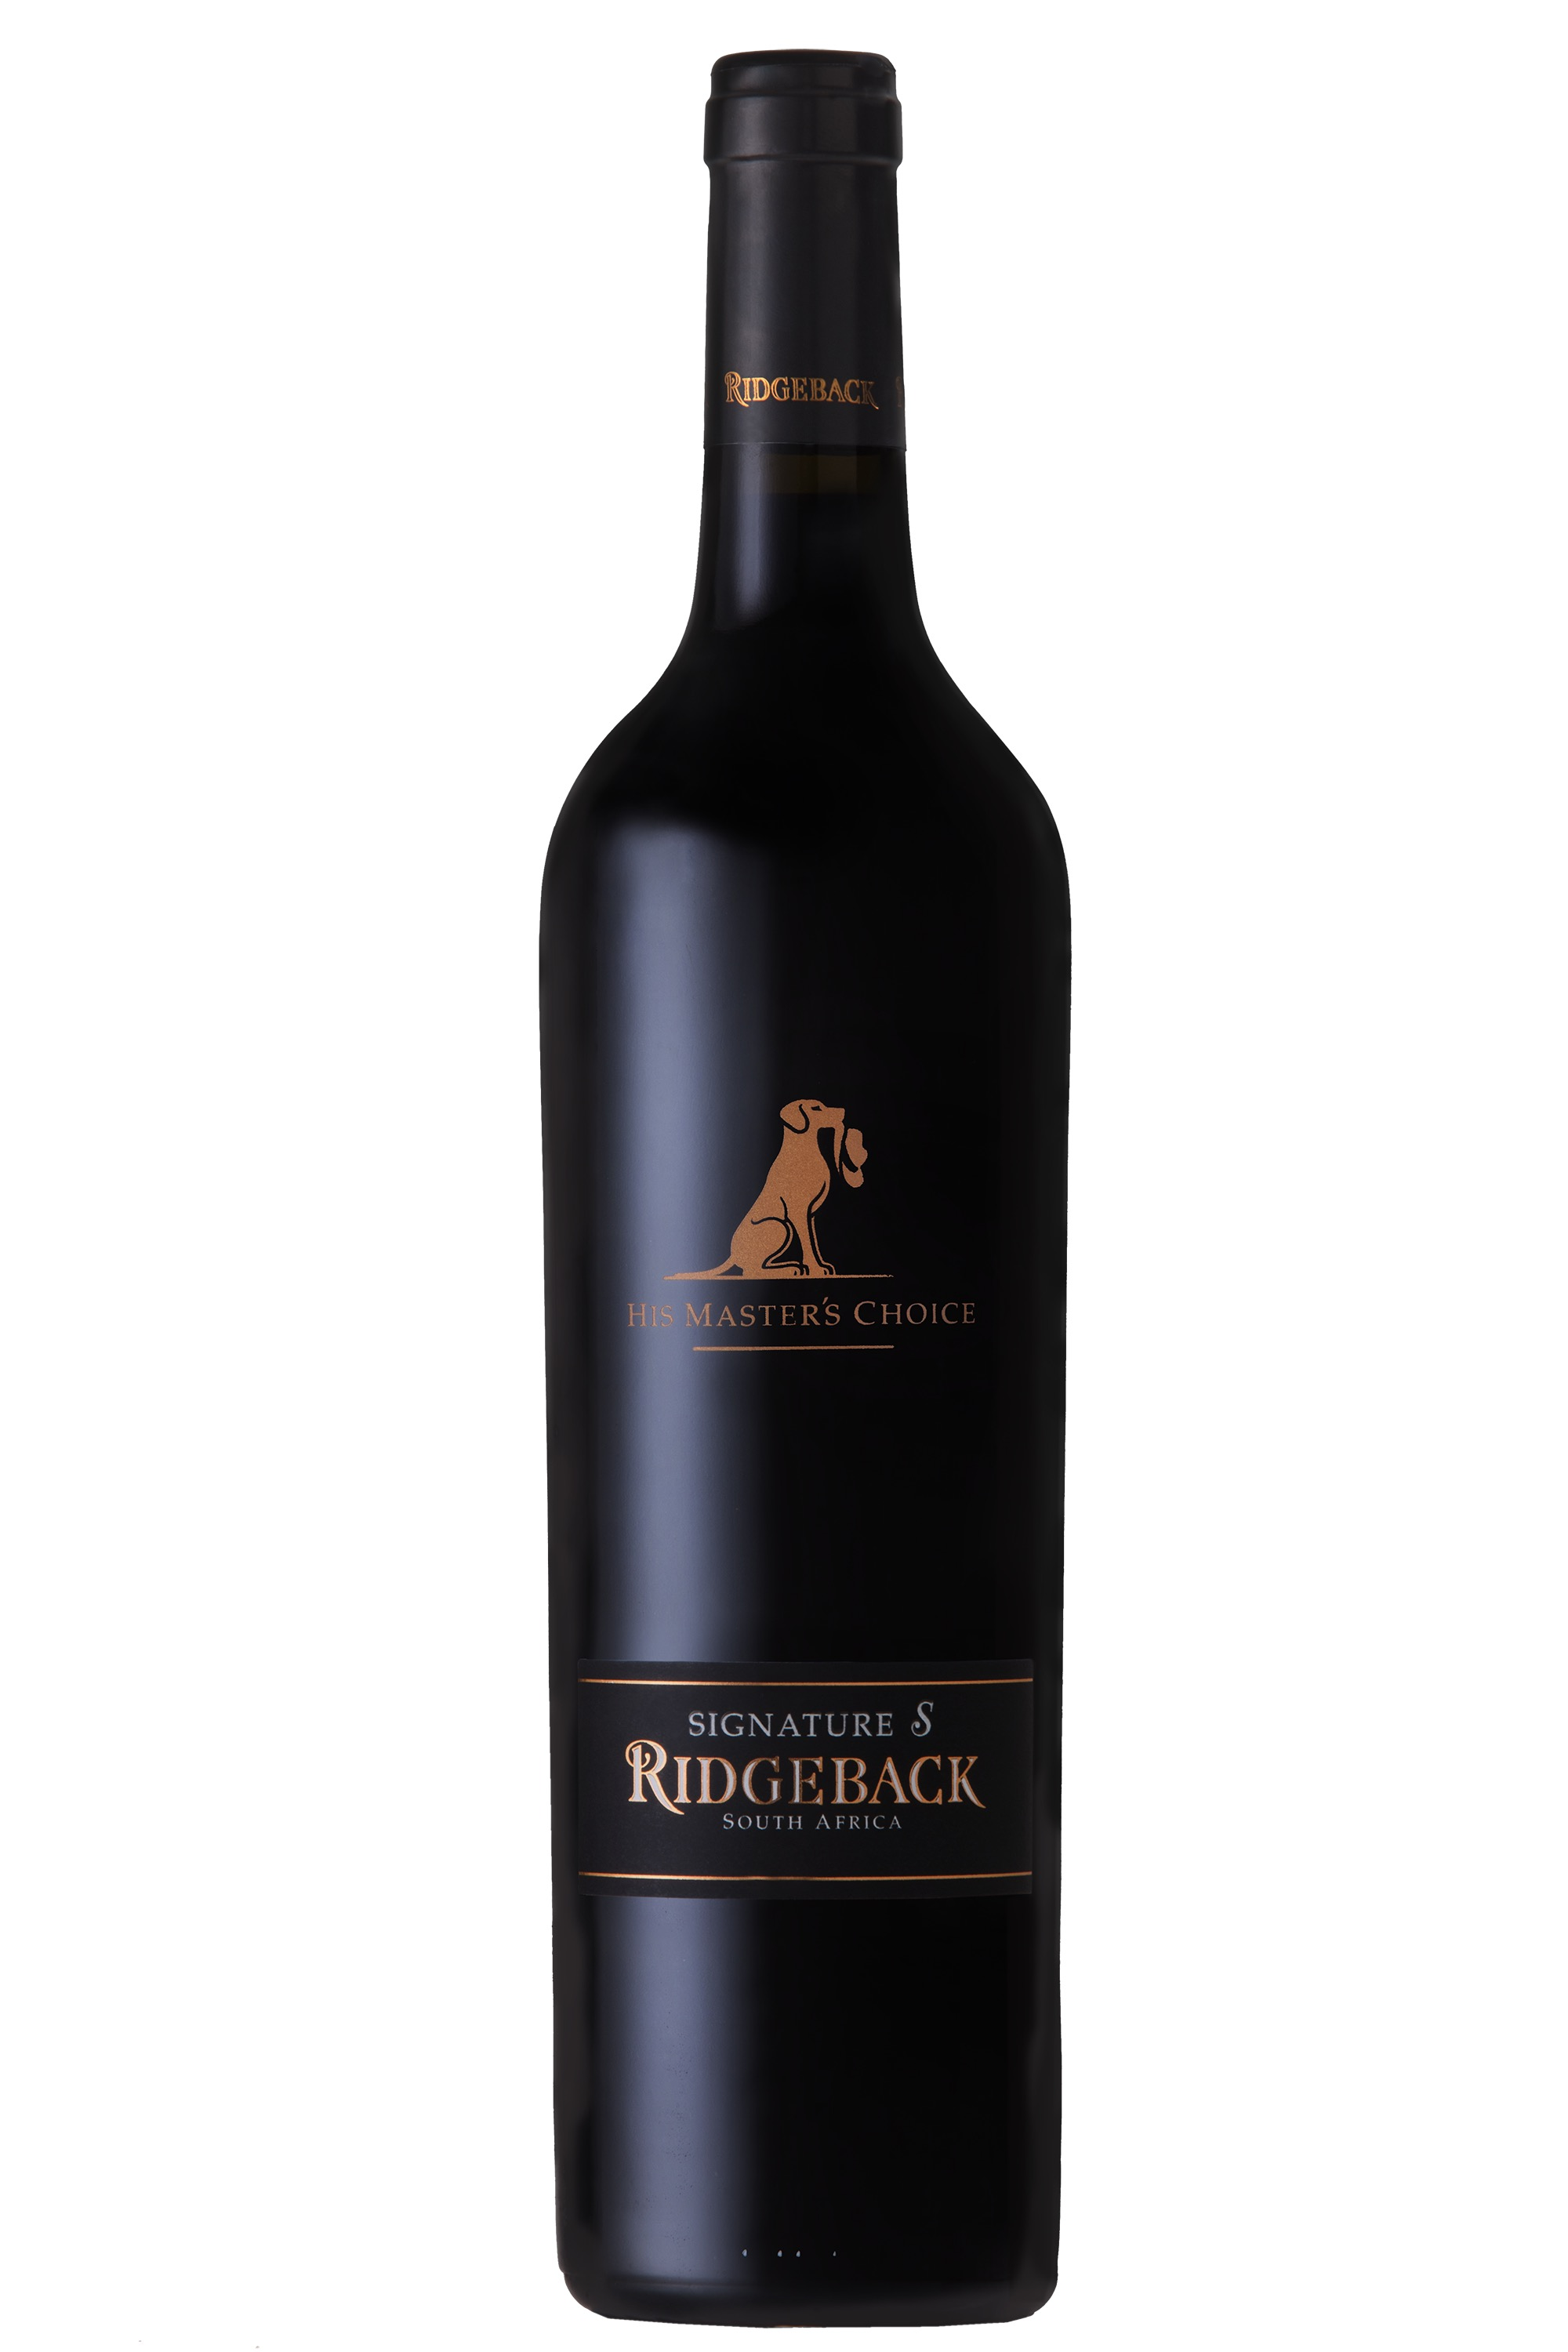 Ridgeback His Master's Choice  S 2015